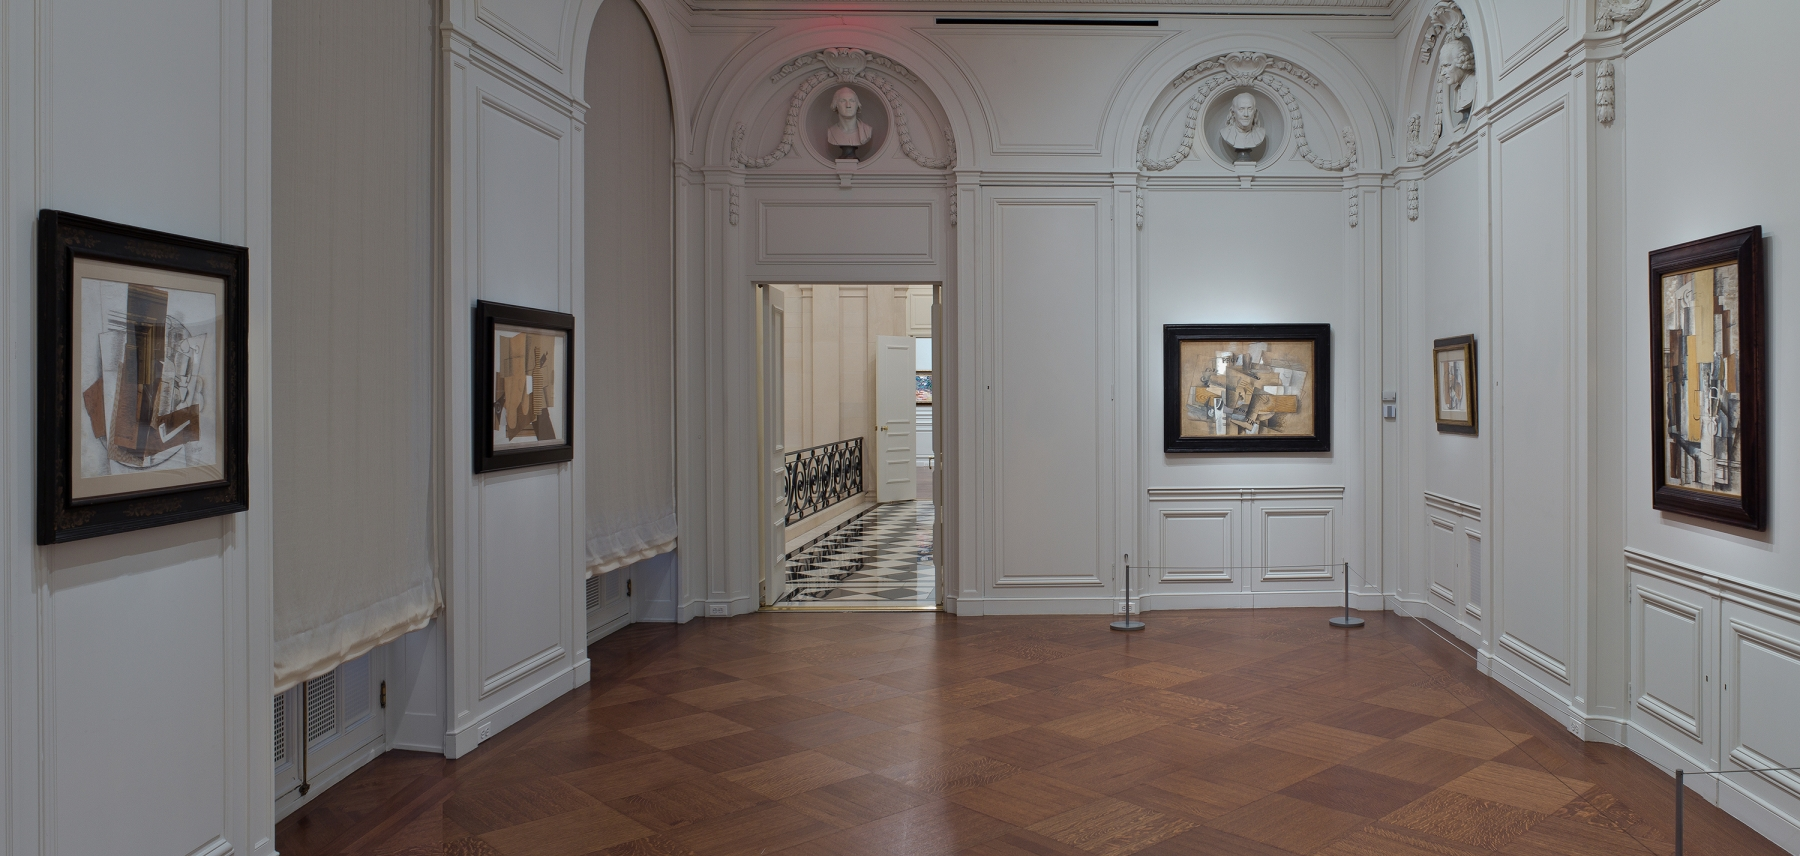 Georges Braque install